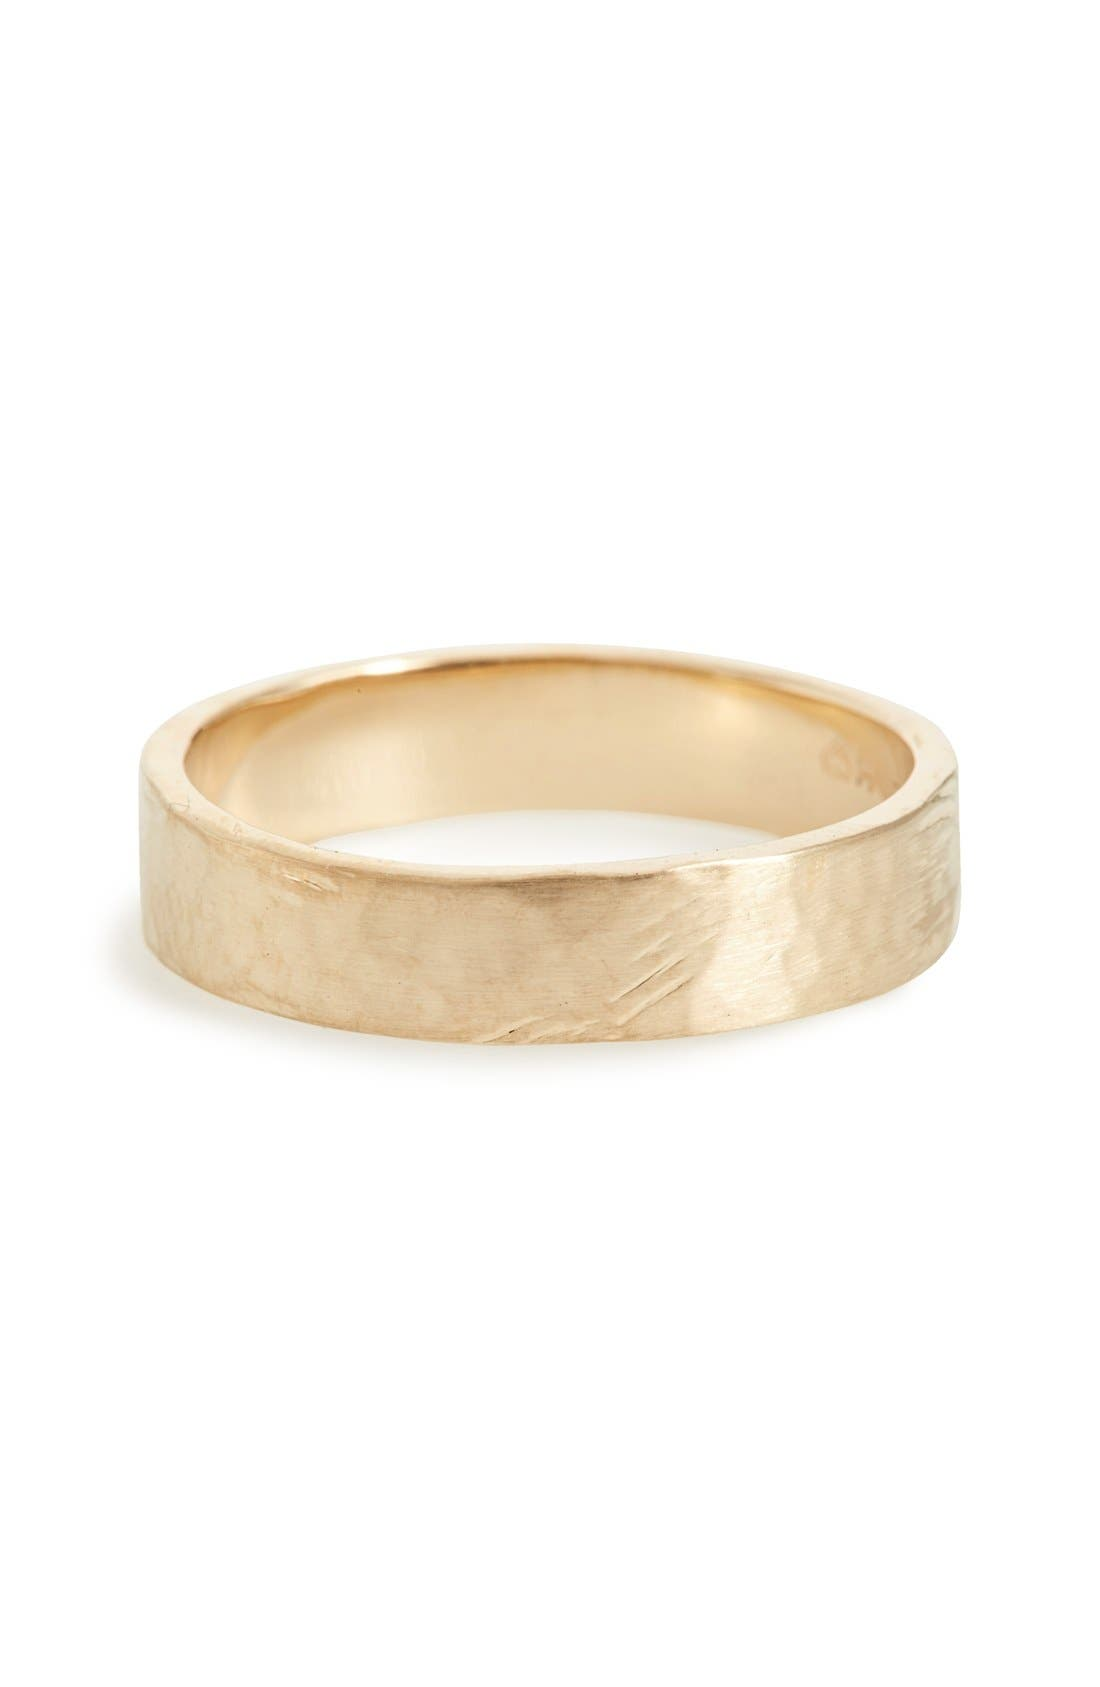 Alternate Image 1 Selected - WWAKE Harmony® Flat Classic Hammered Band Ring (Nordstrom Exclusive)